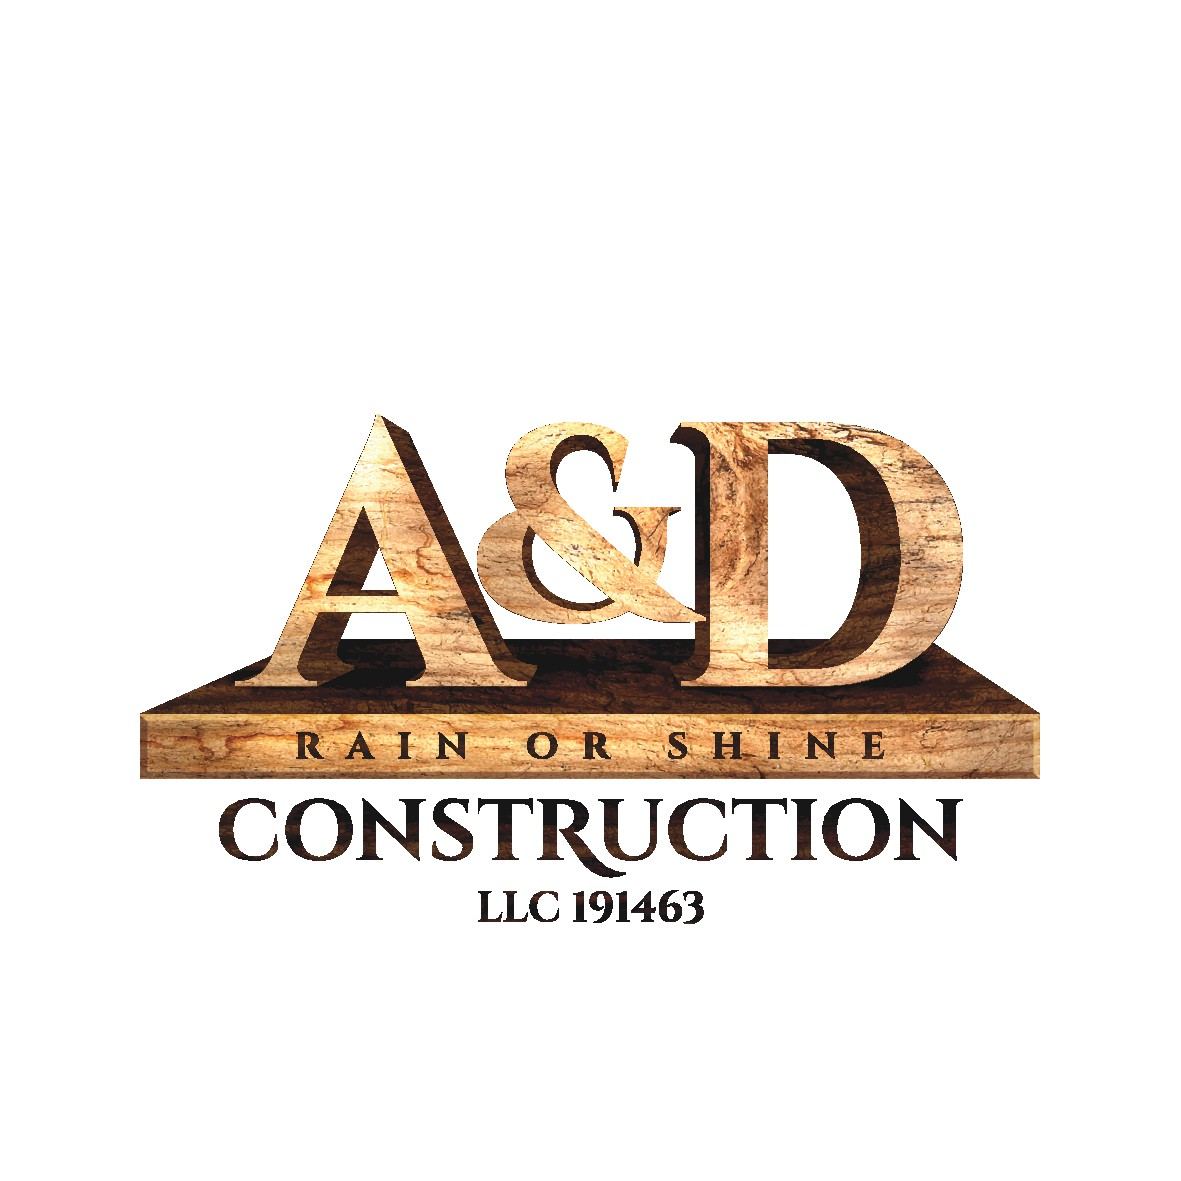 A&D Rain Or Shine Construction LLC 191463